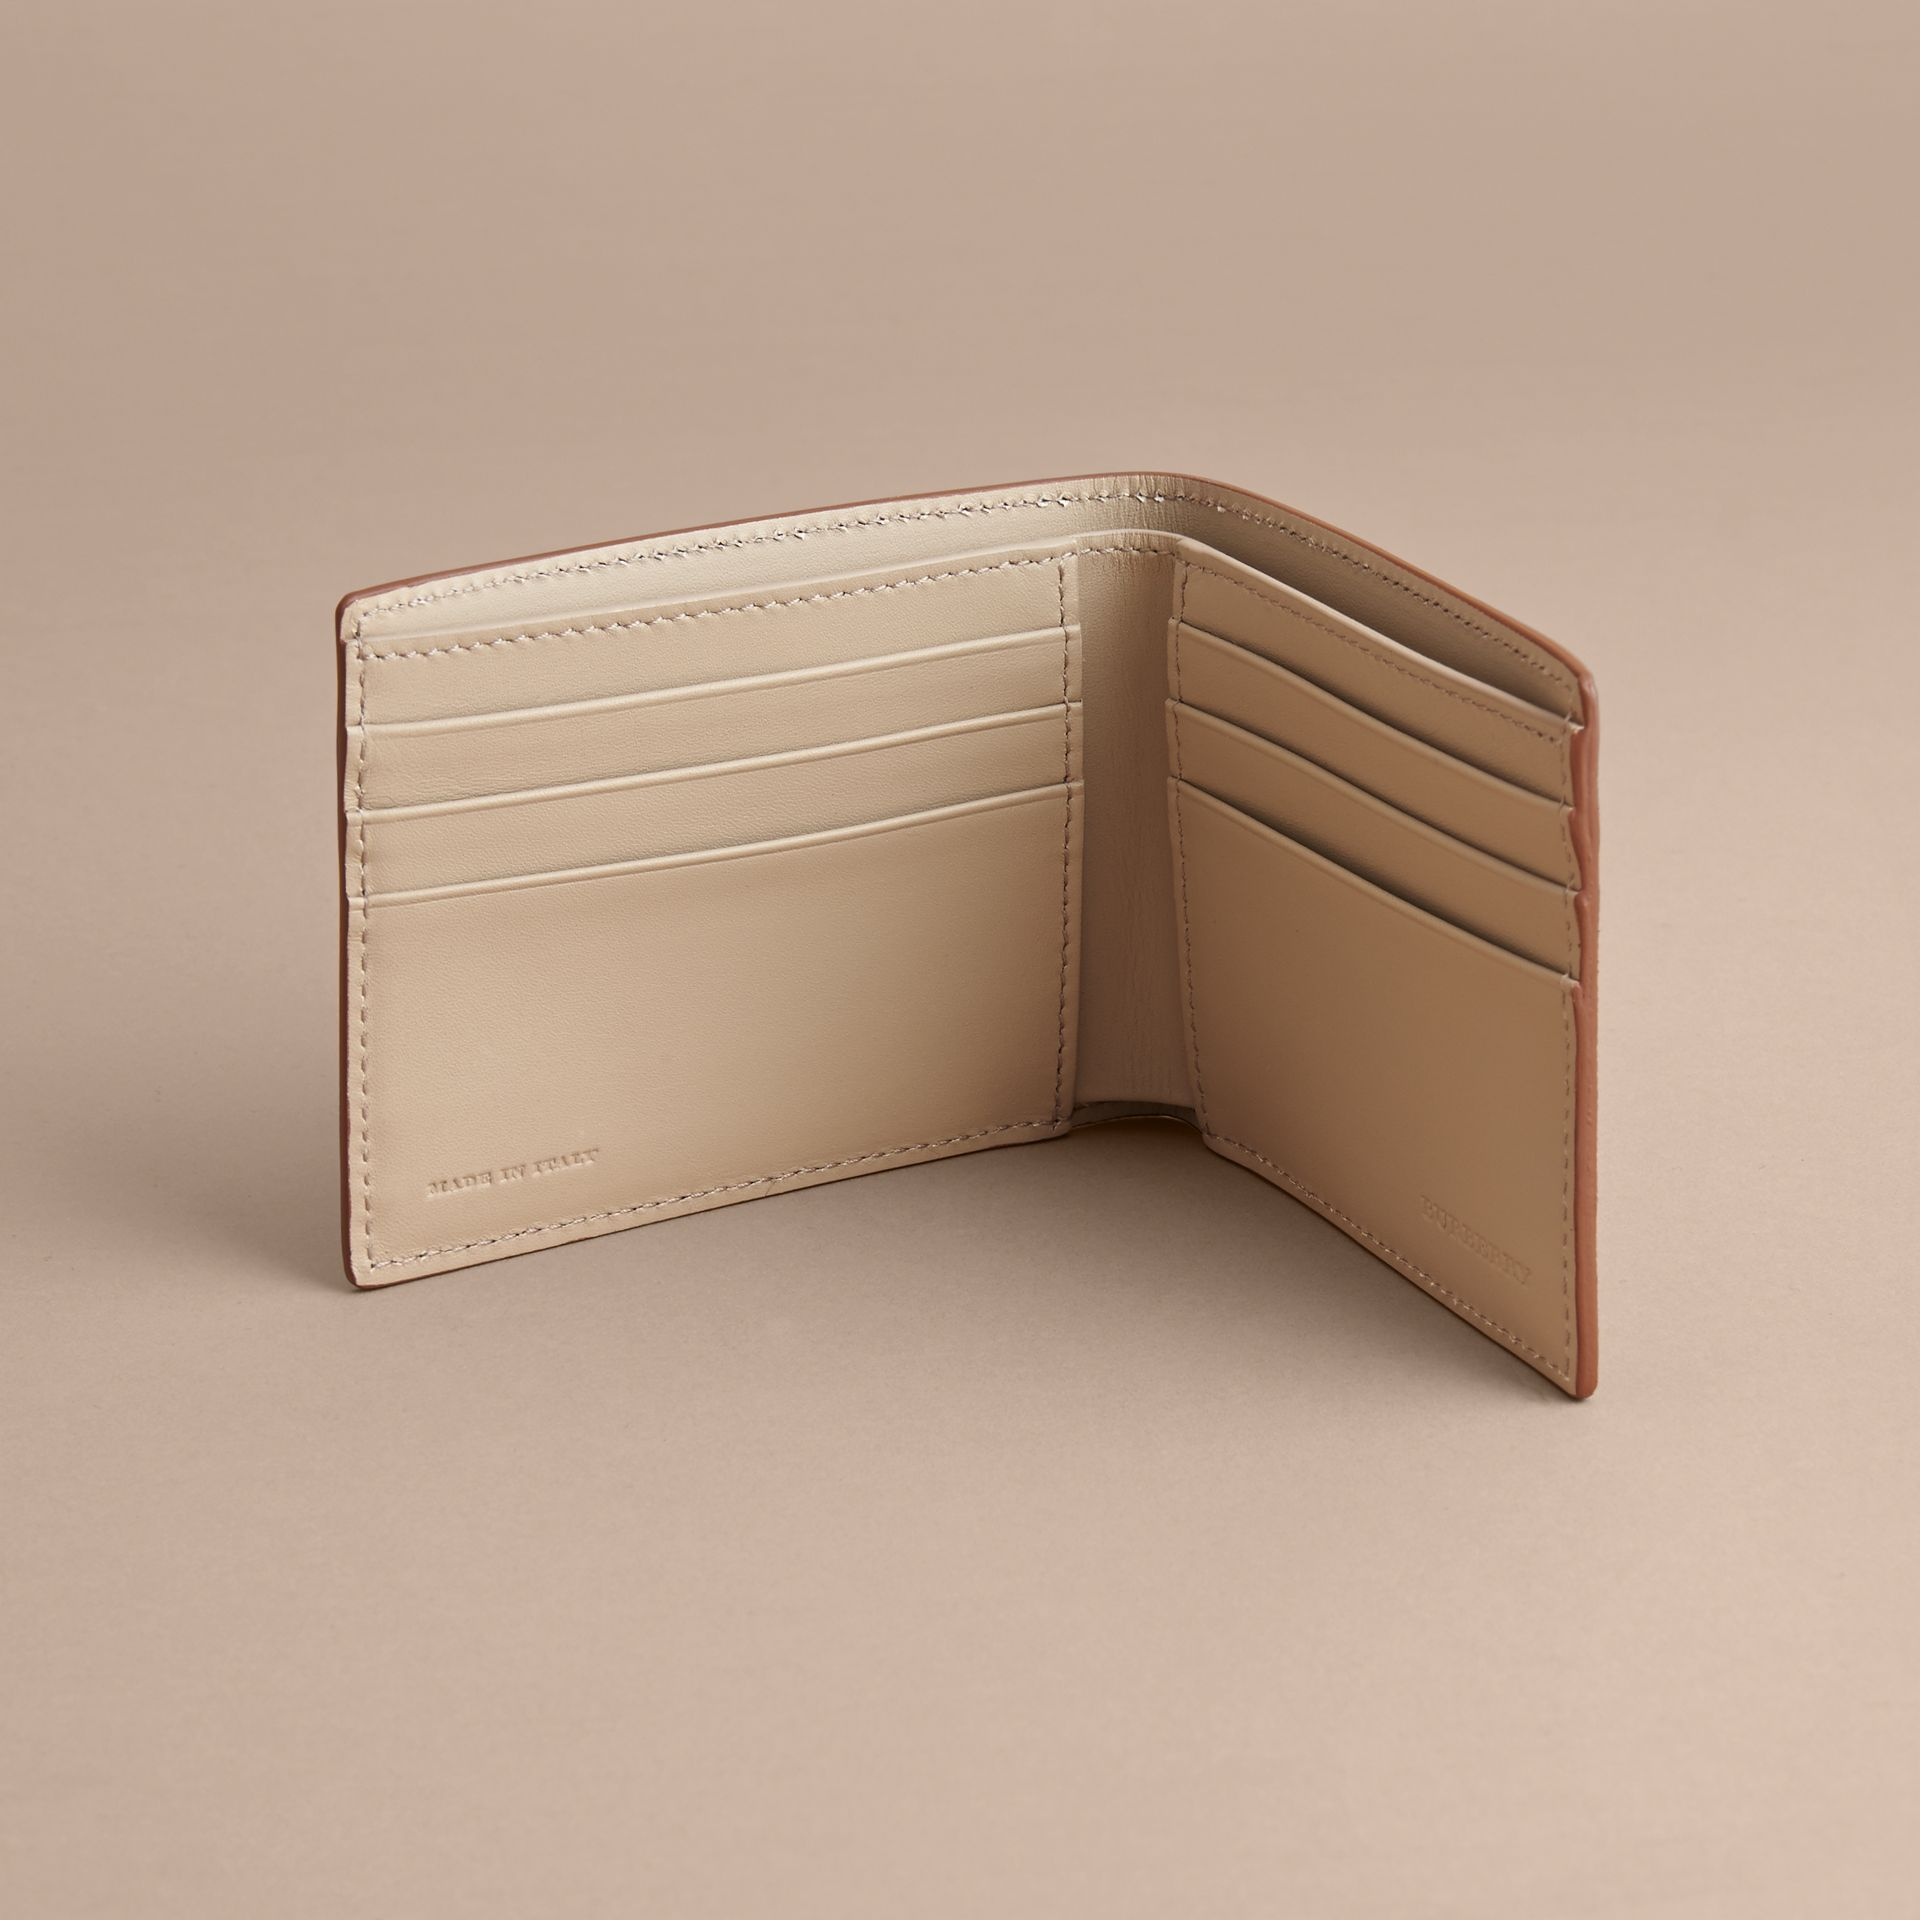 London Leather Bifold Wallet in Tan | Burberry - gallery image 5